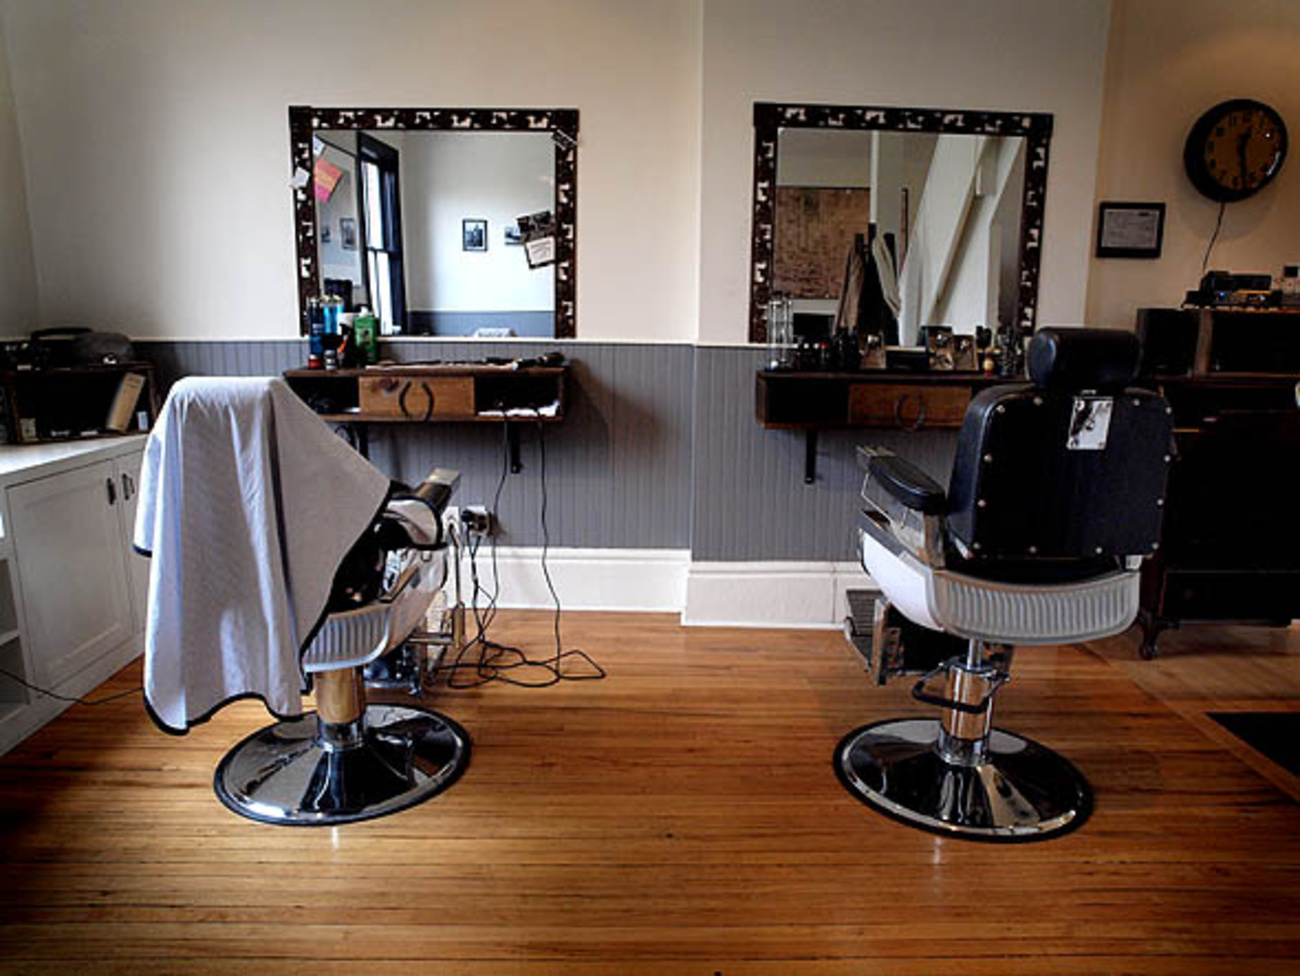 """ned s barber shop Ned's new wave barber shop ned's new wave barber shop specializes in modern unisex haircuts the only service available at ned's is a """"20-minute"""" haircut for which the customer is charged $10 the shop has five (5) barbers."""